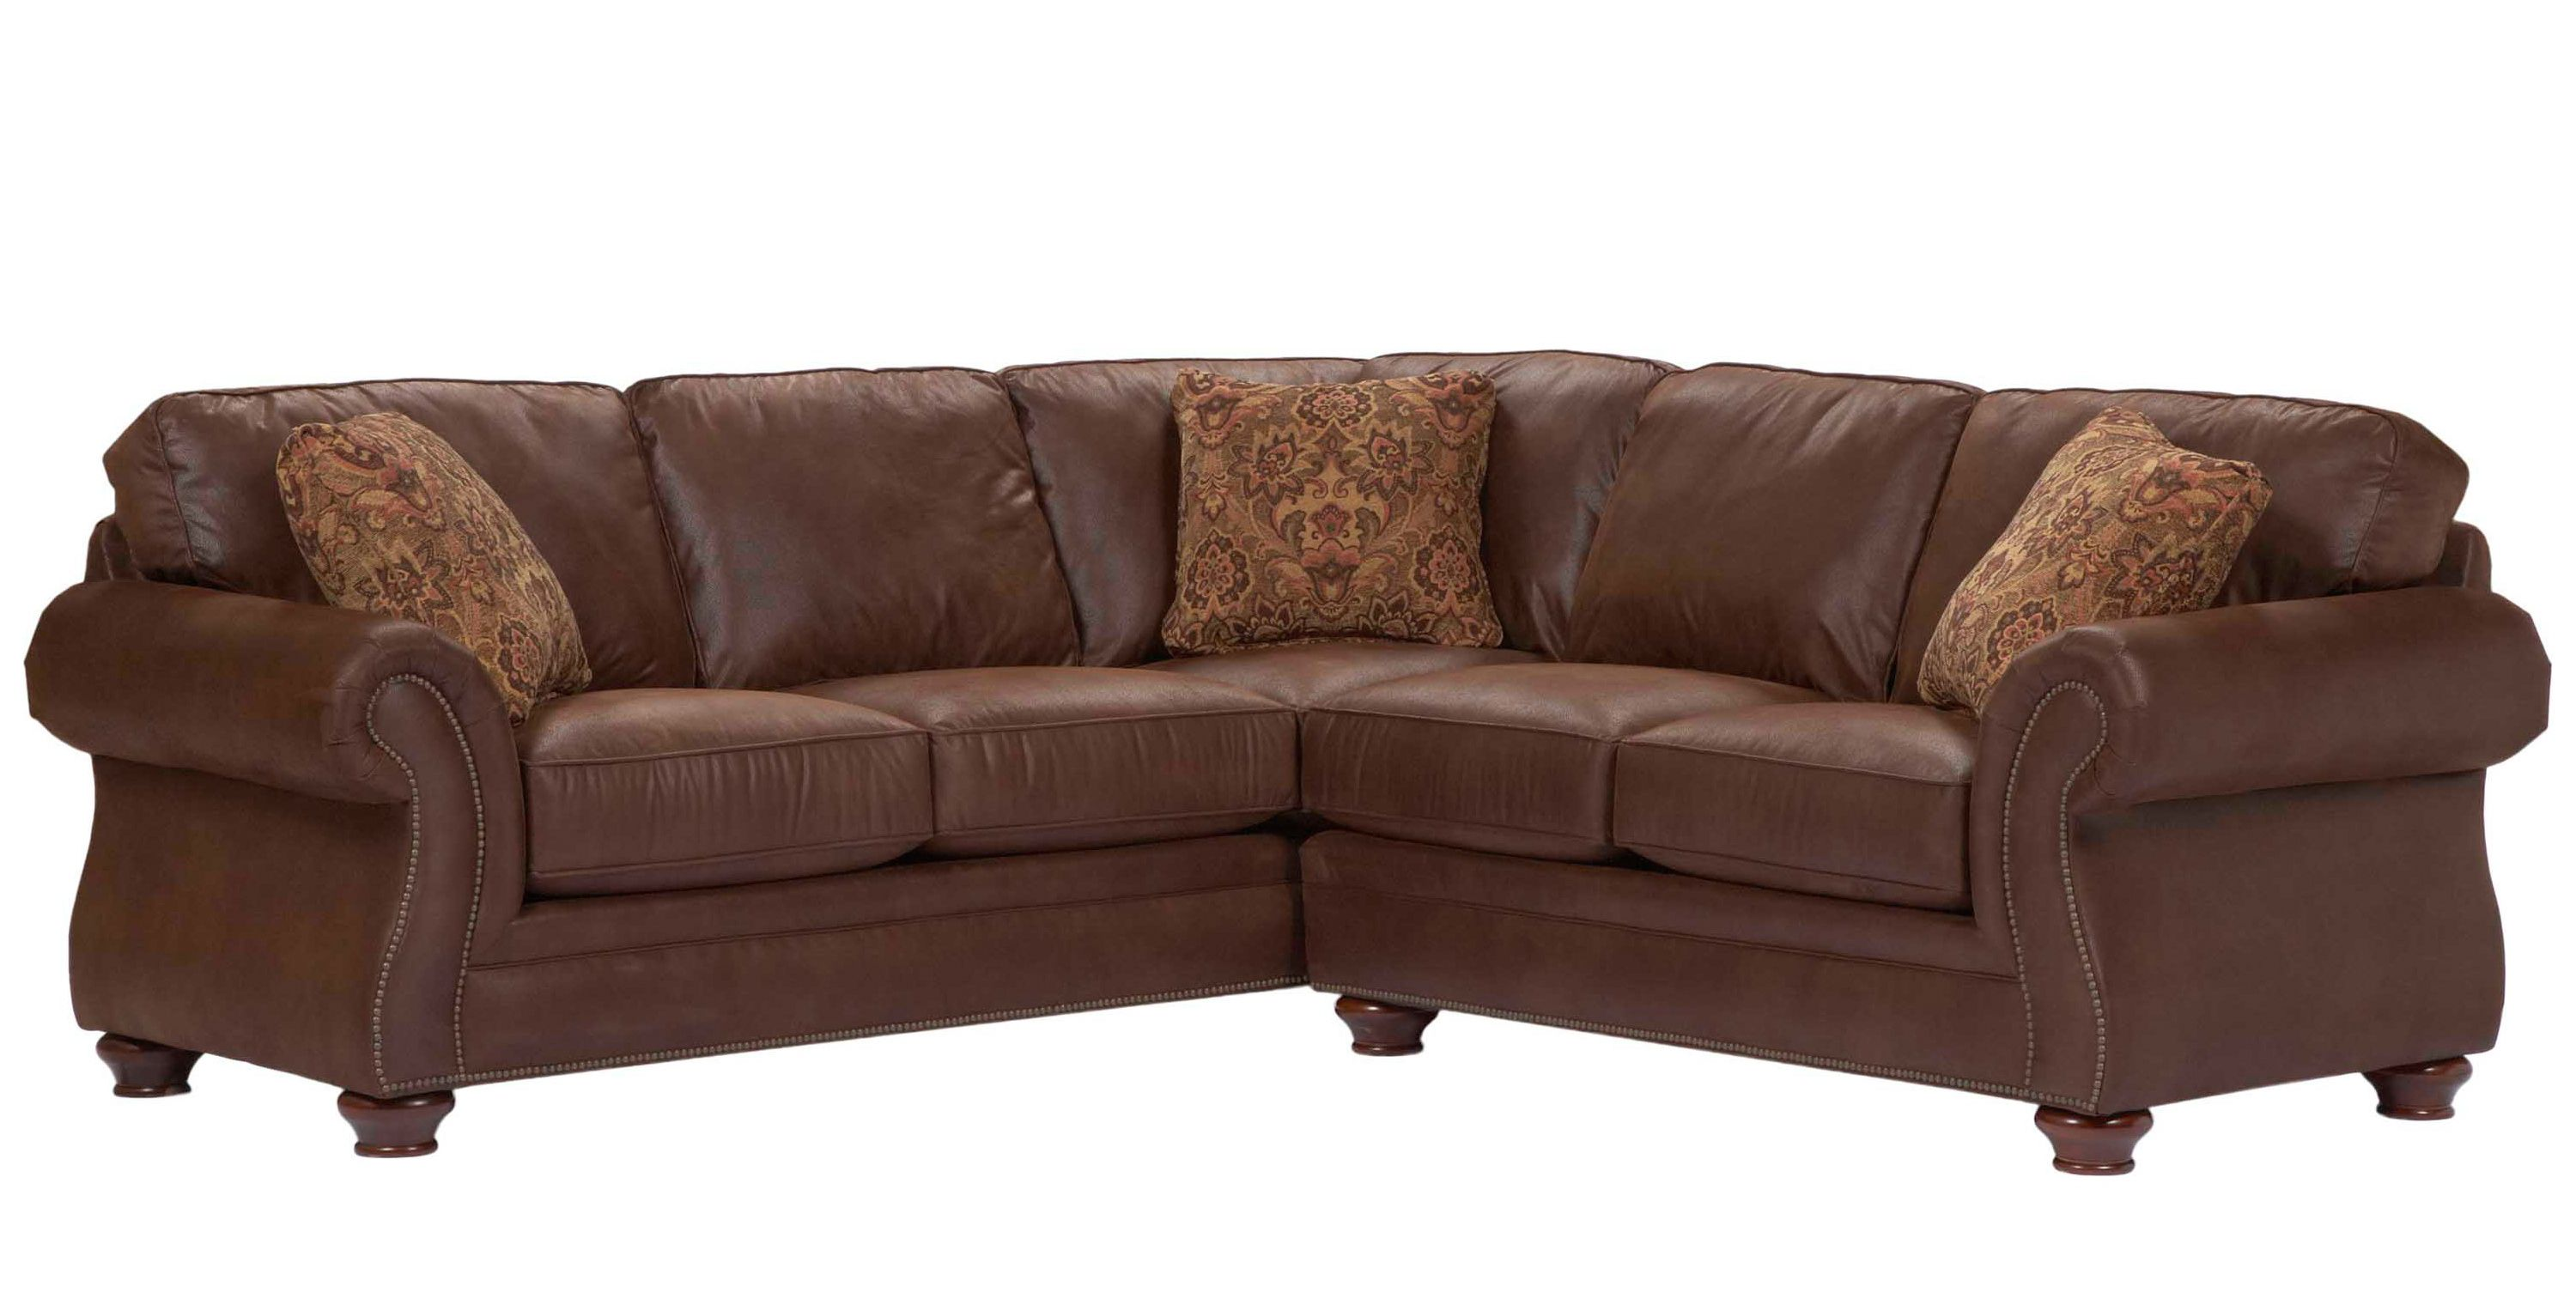 Best Collections Of Sofa And Couch Homysofa